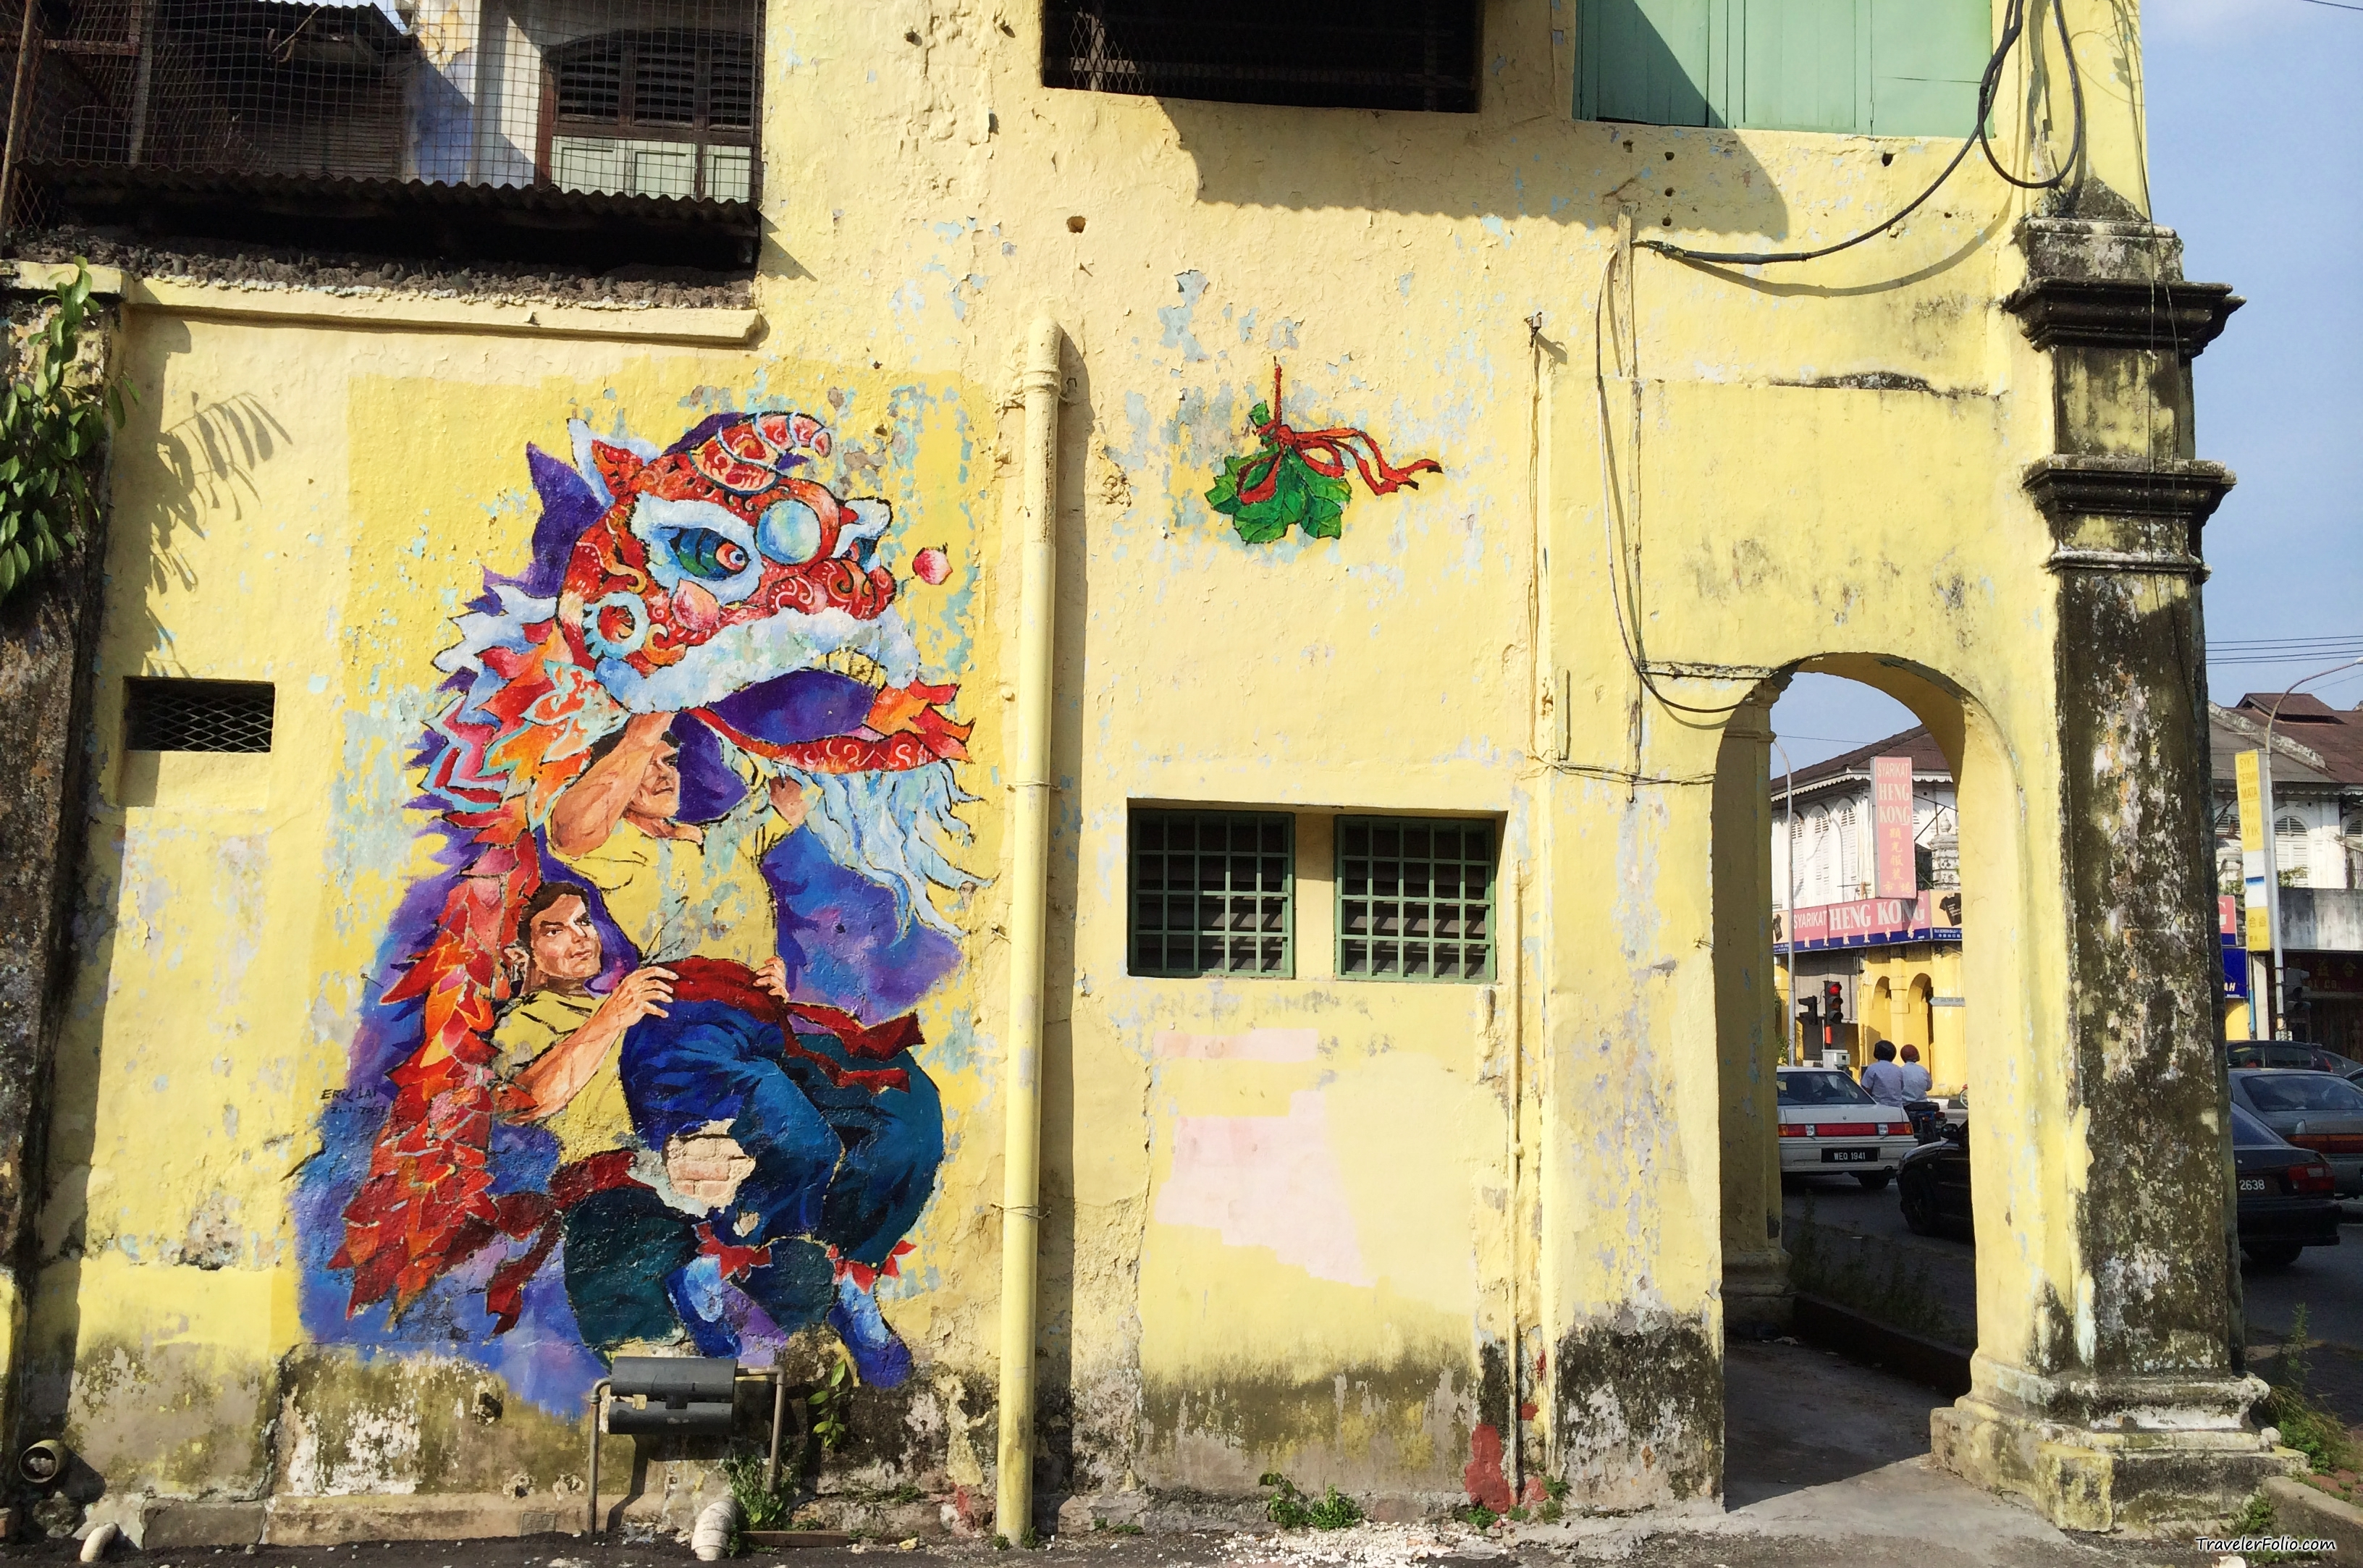 Ipoh Street Art, Wall Paintings, Murals | Malaysia @ Singapore ...